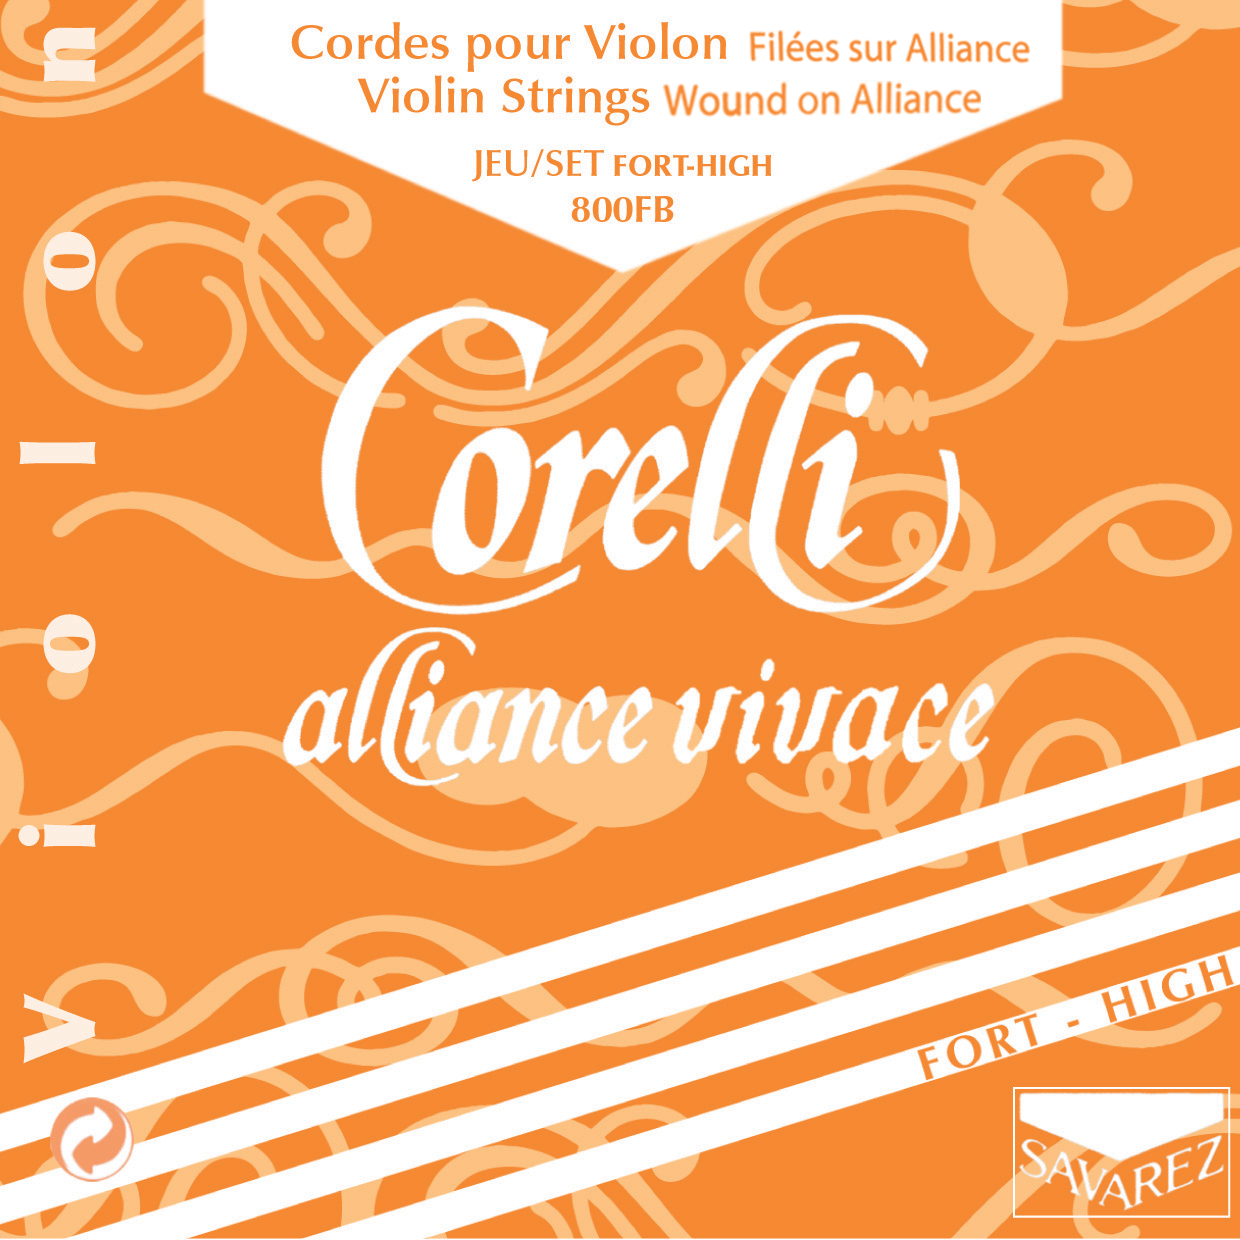 CORELLI ALLIANCE VIVACE FORTE 800FB VIOLON